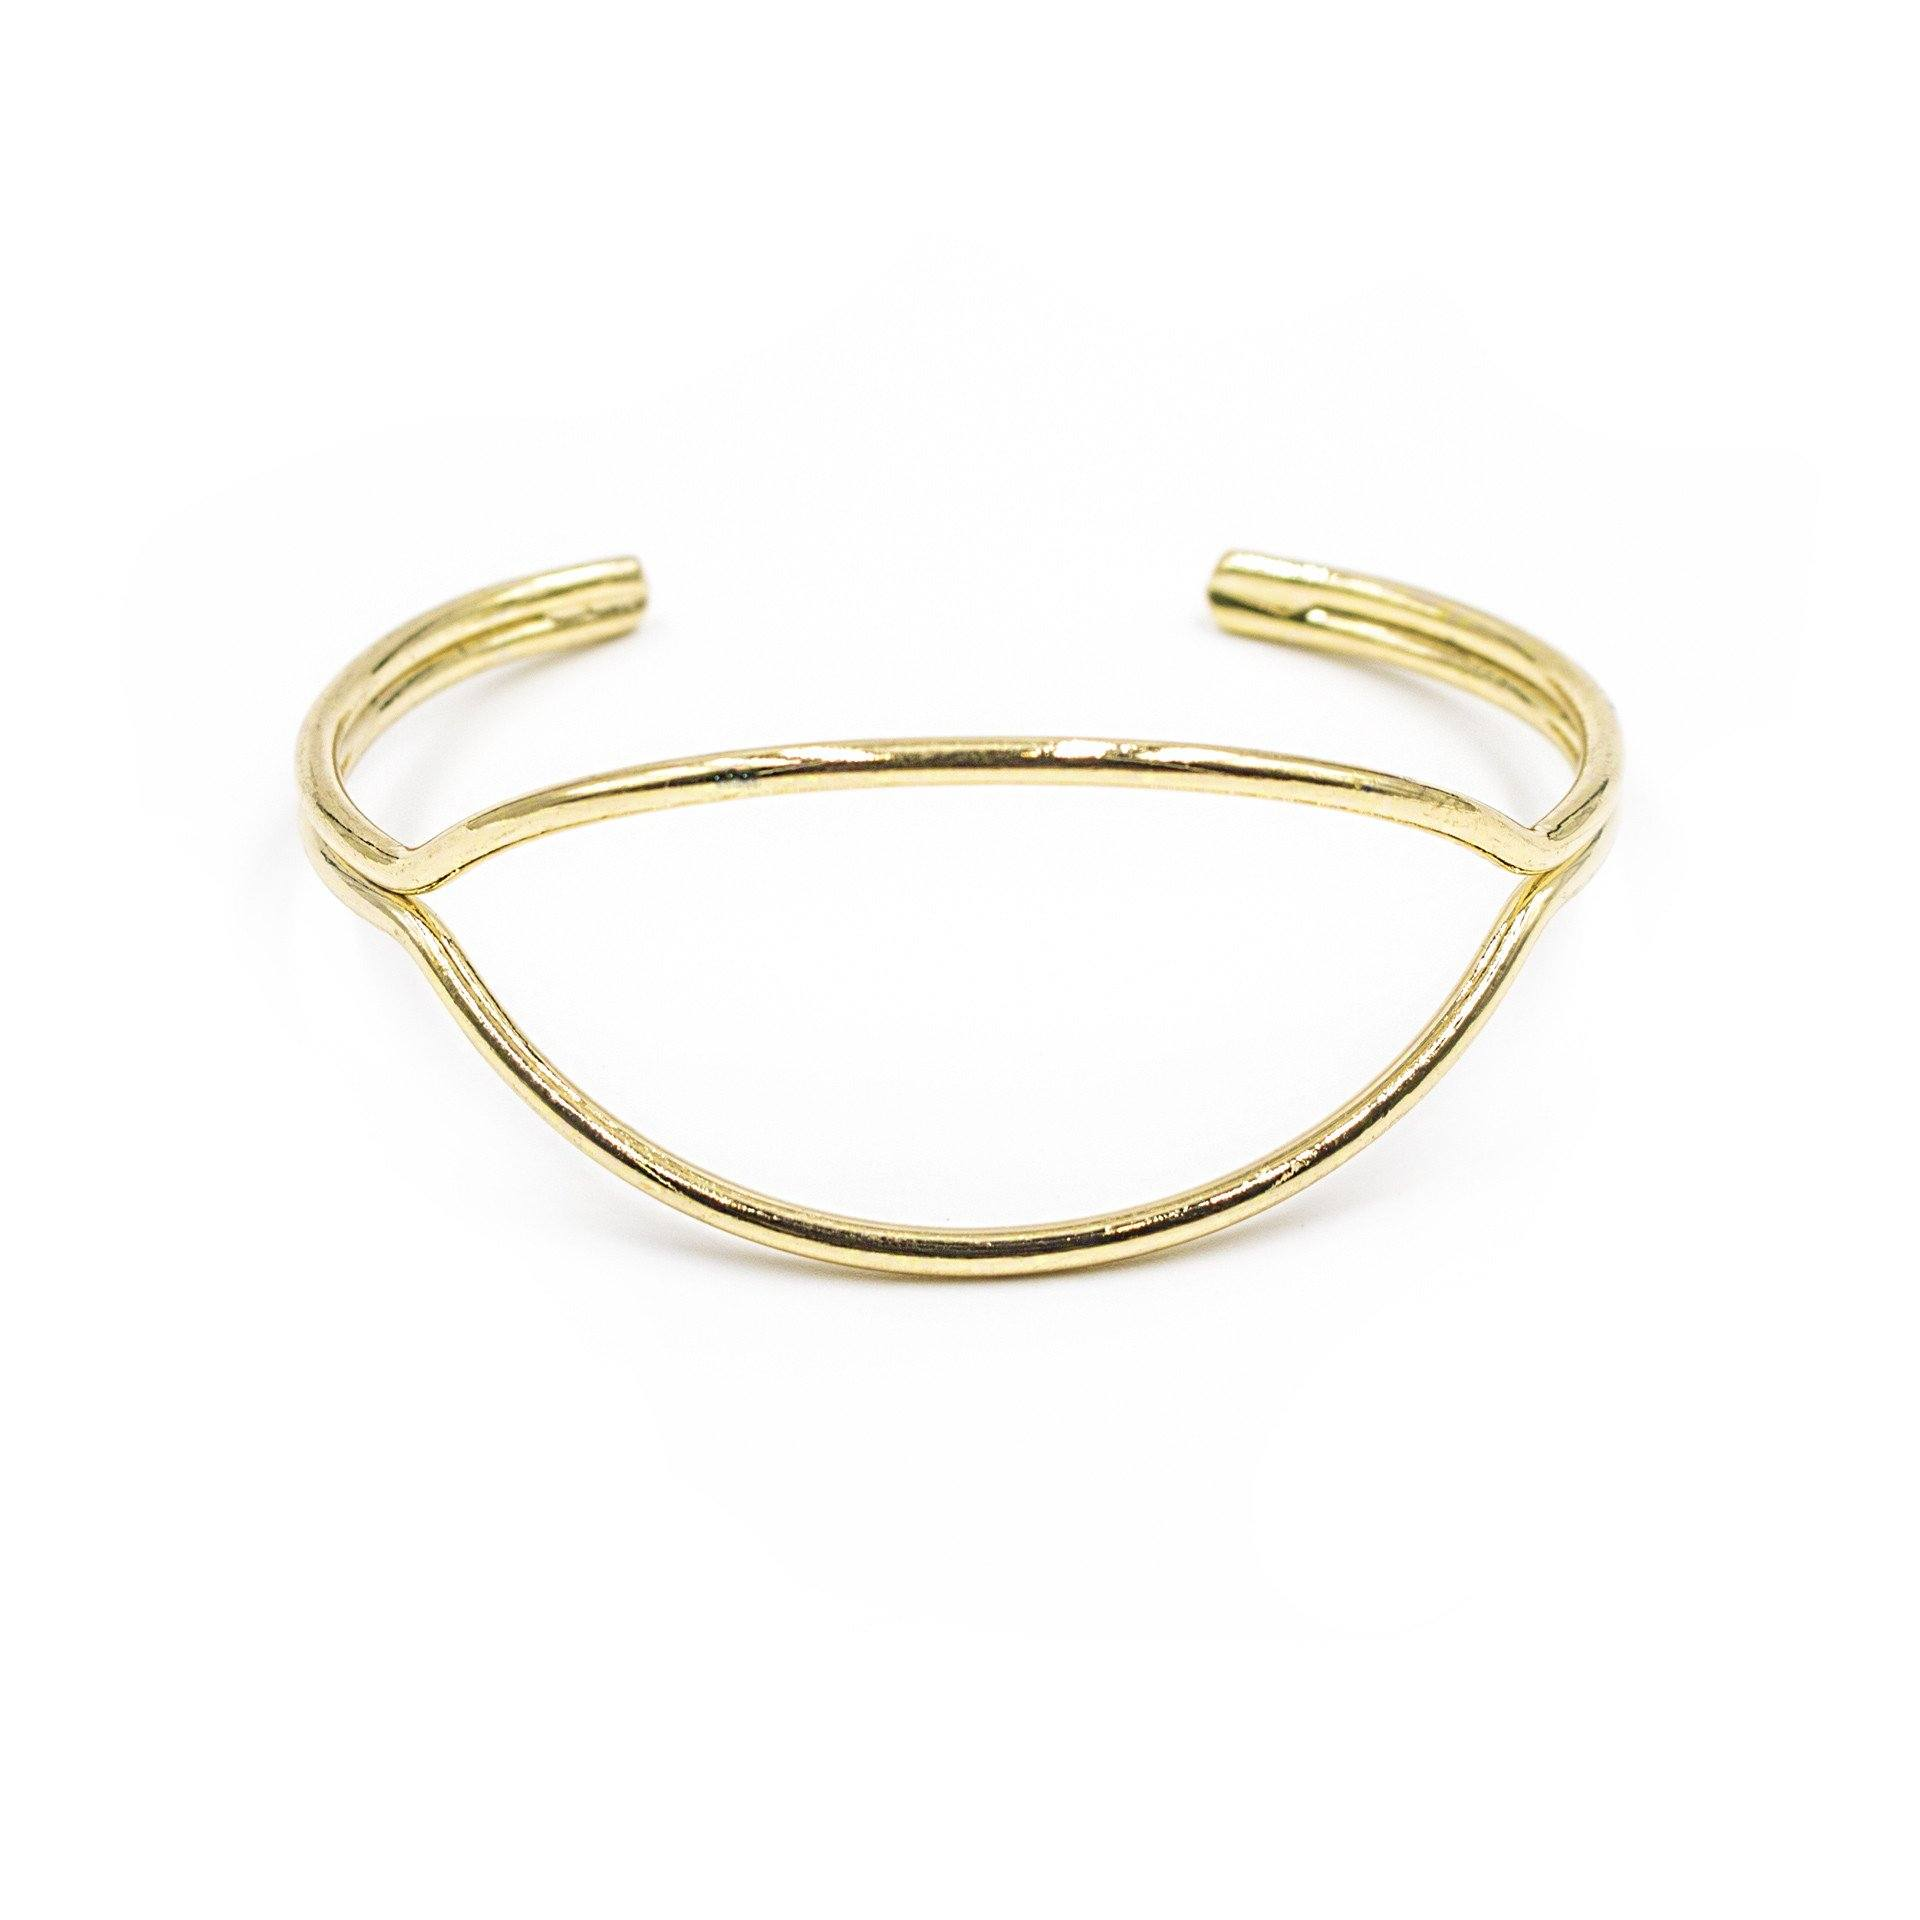 'I'll Have A Double' Cuff Bracelet - Arlo and Arrows